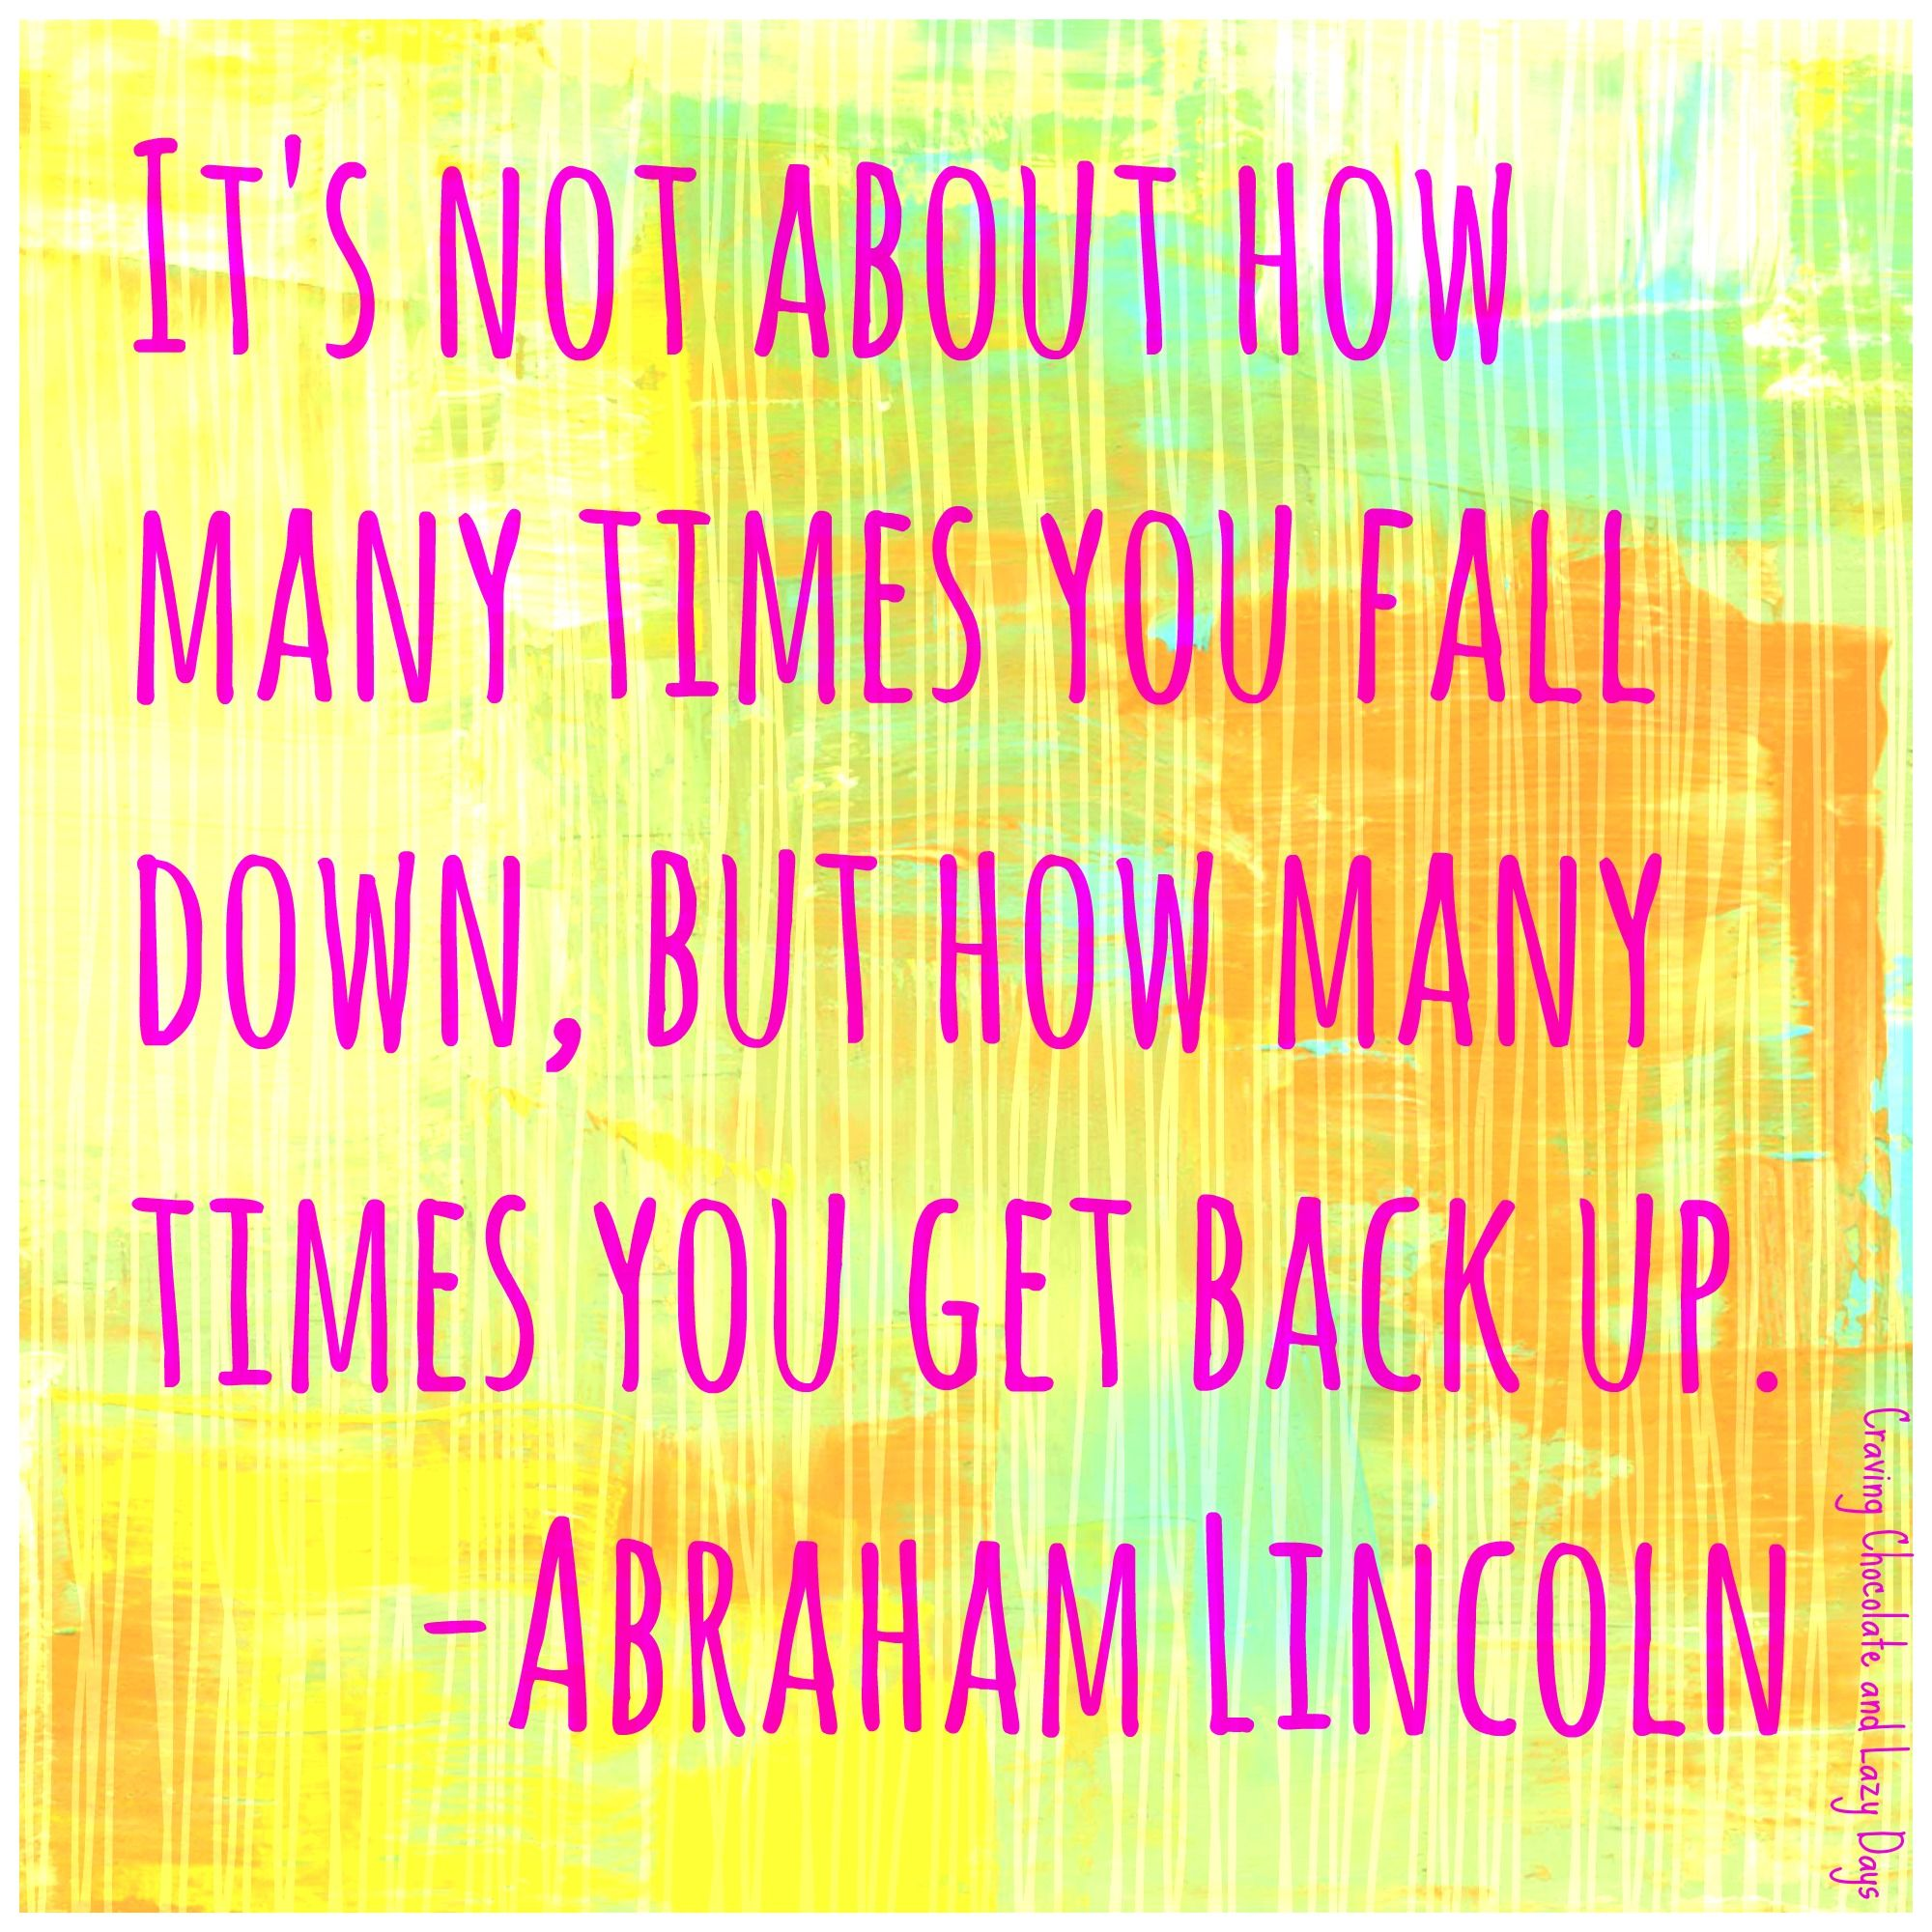 It S Not About How Many Times You Fall But How Many Times You Get Back Up Abraham Lincoln Up Quotes Quotes For Kids Inspiring Quotes About Life